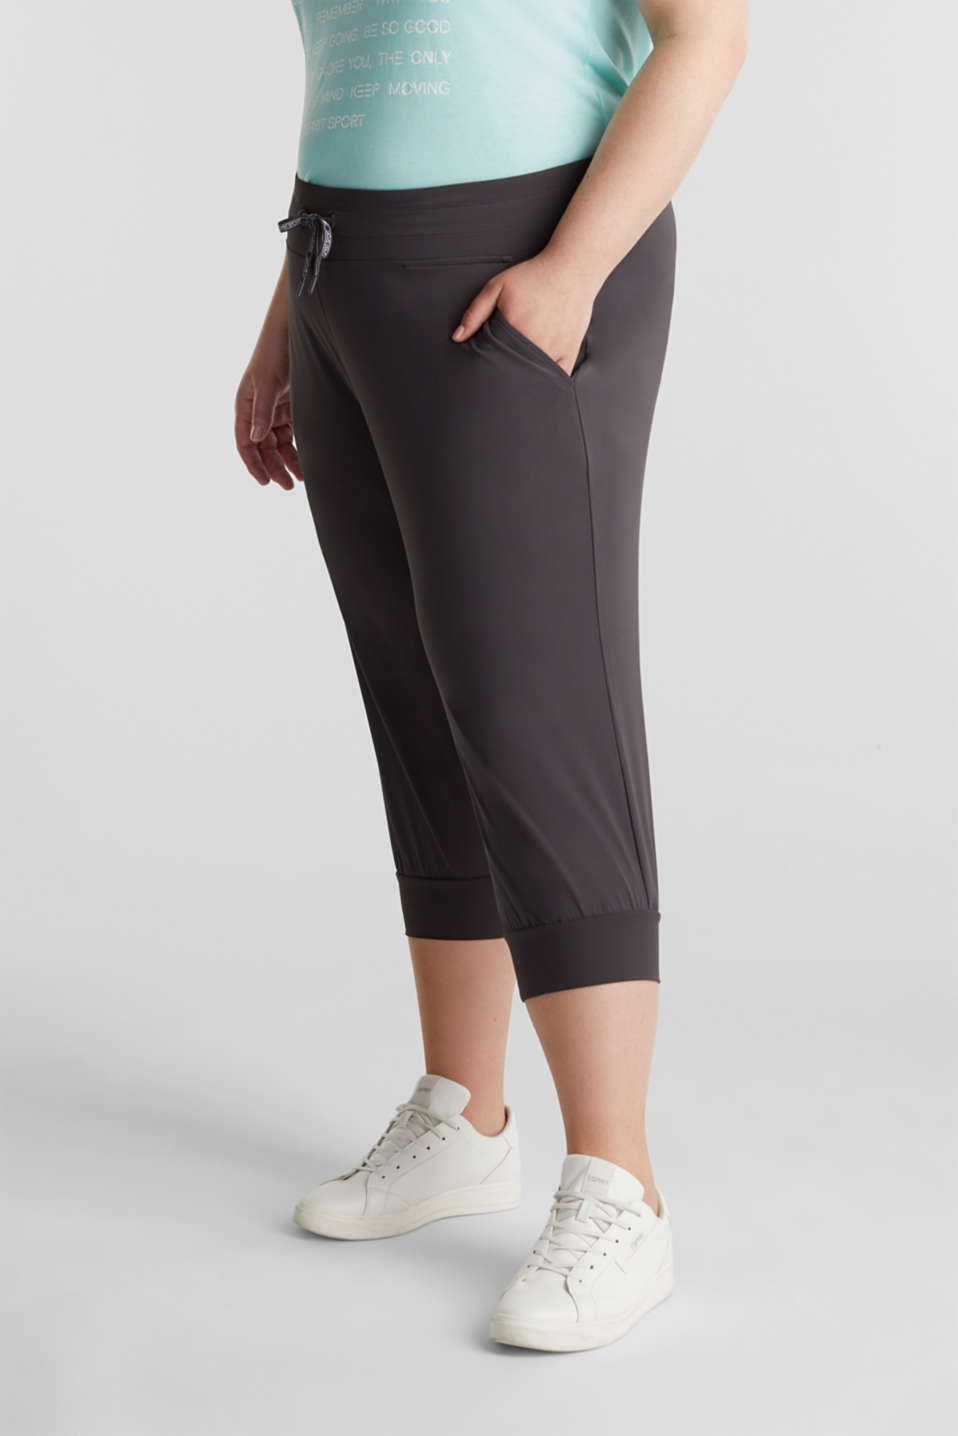 CURVY ankle-length leggings, E-DRY, ANTHRACITE, detail image number 6